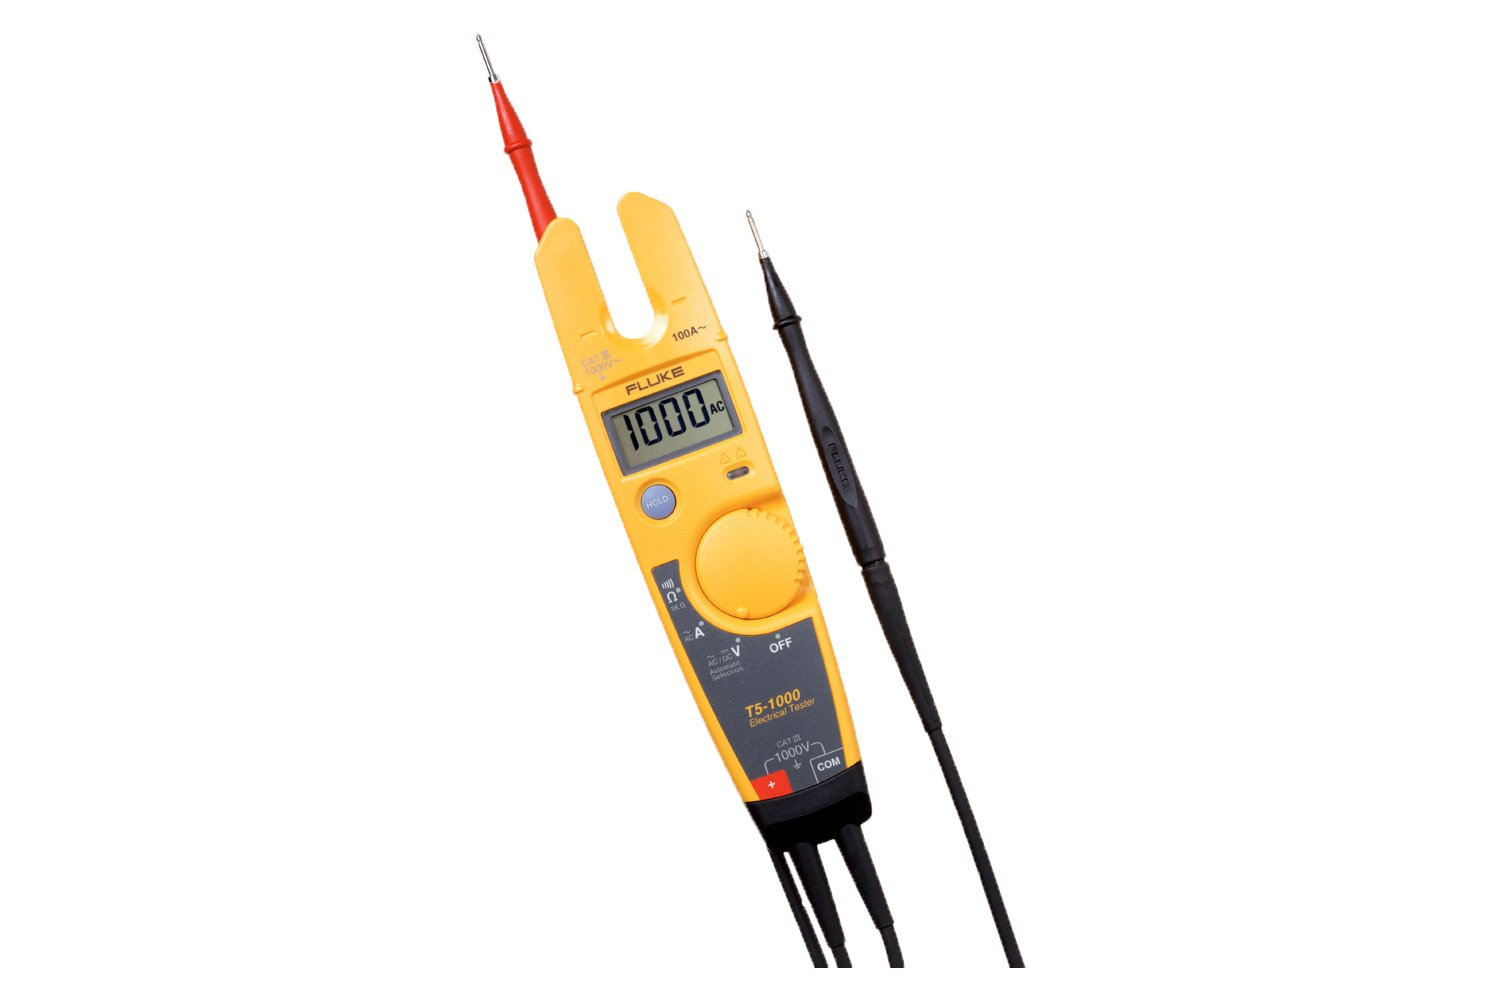 Open Circuit Tester A Must Have Circuit Tester Like The One Pictured